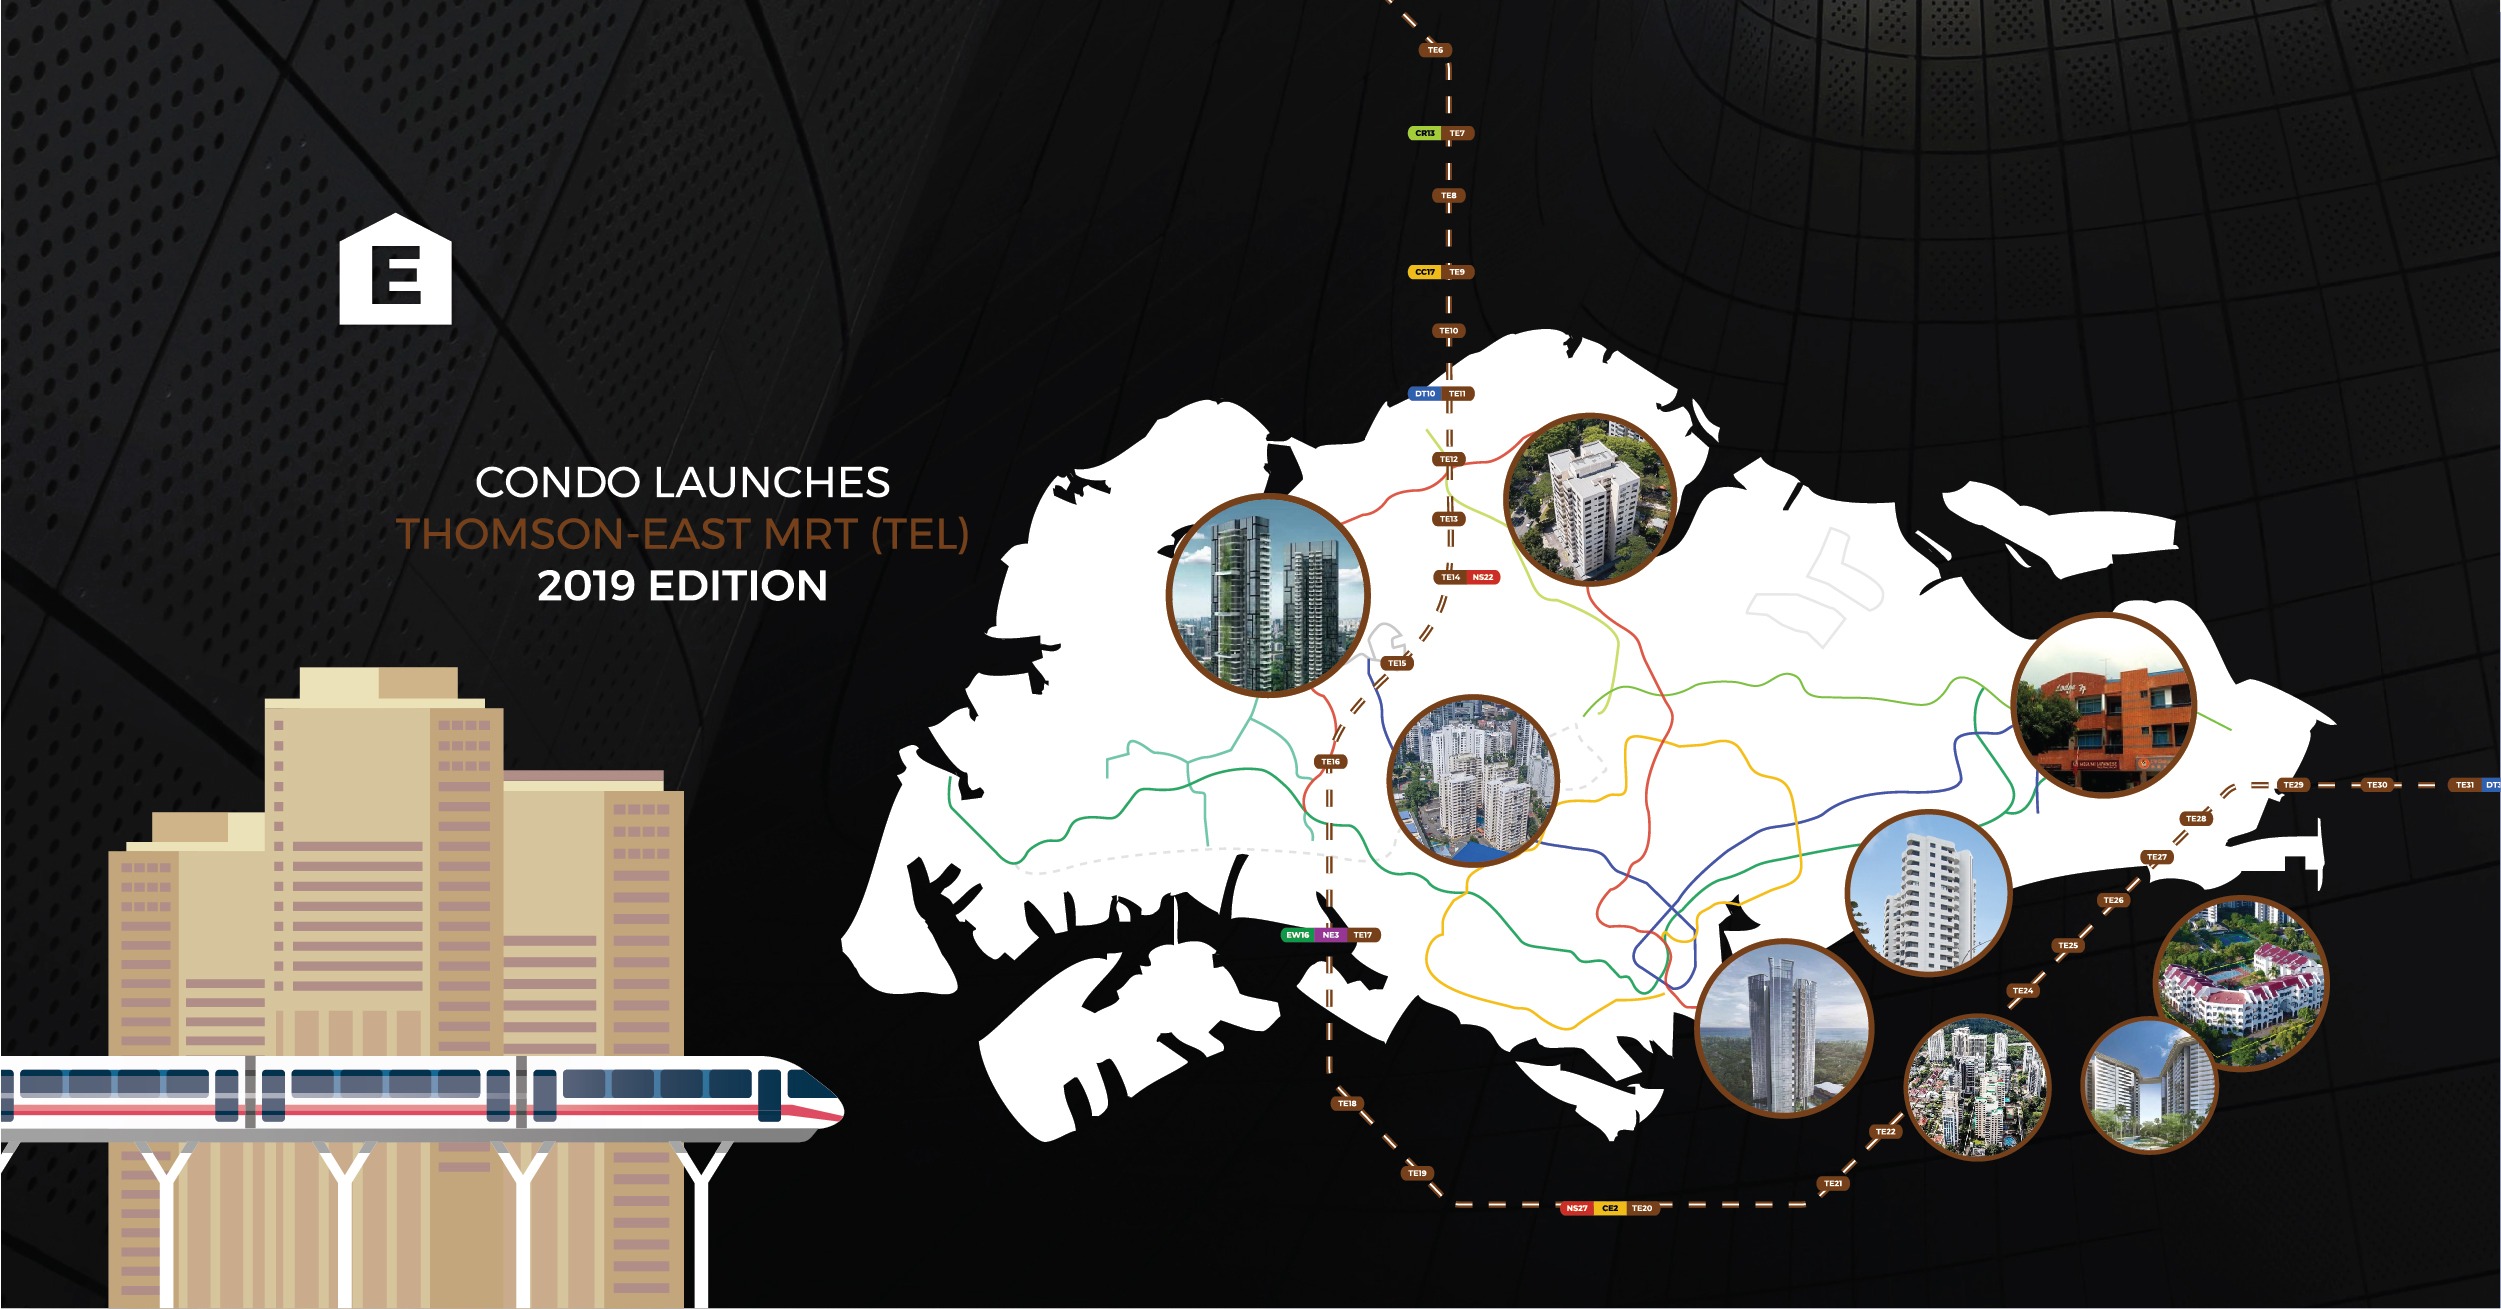 TEL MRT STATION - New Condo Launches within 500m of a Thomas-East Coast Line (TEL) MRT Station: 2019 Edition